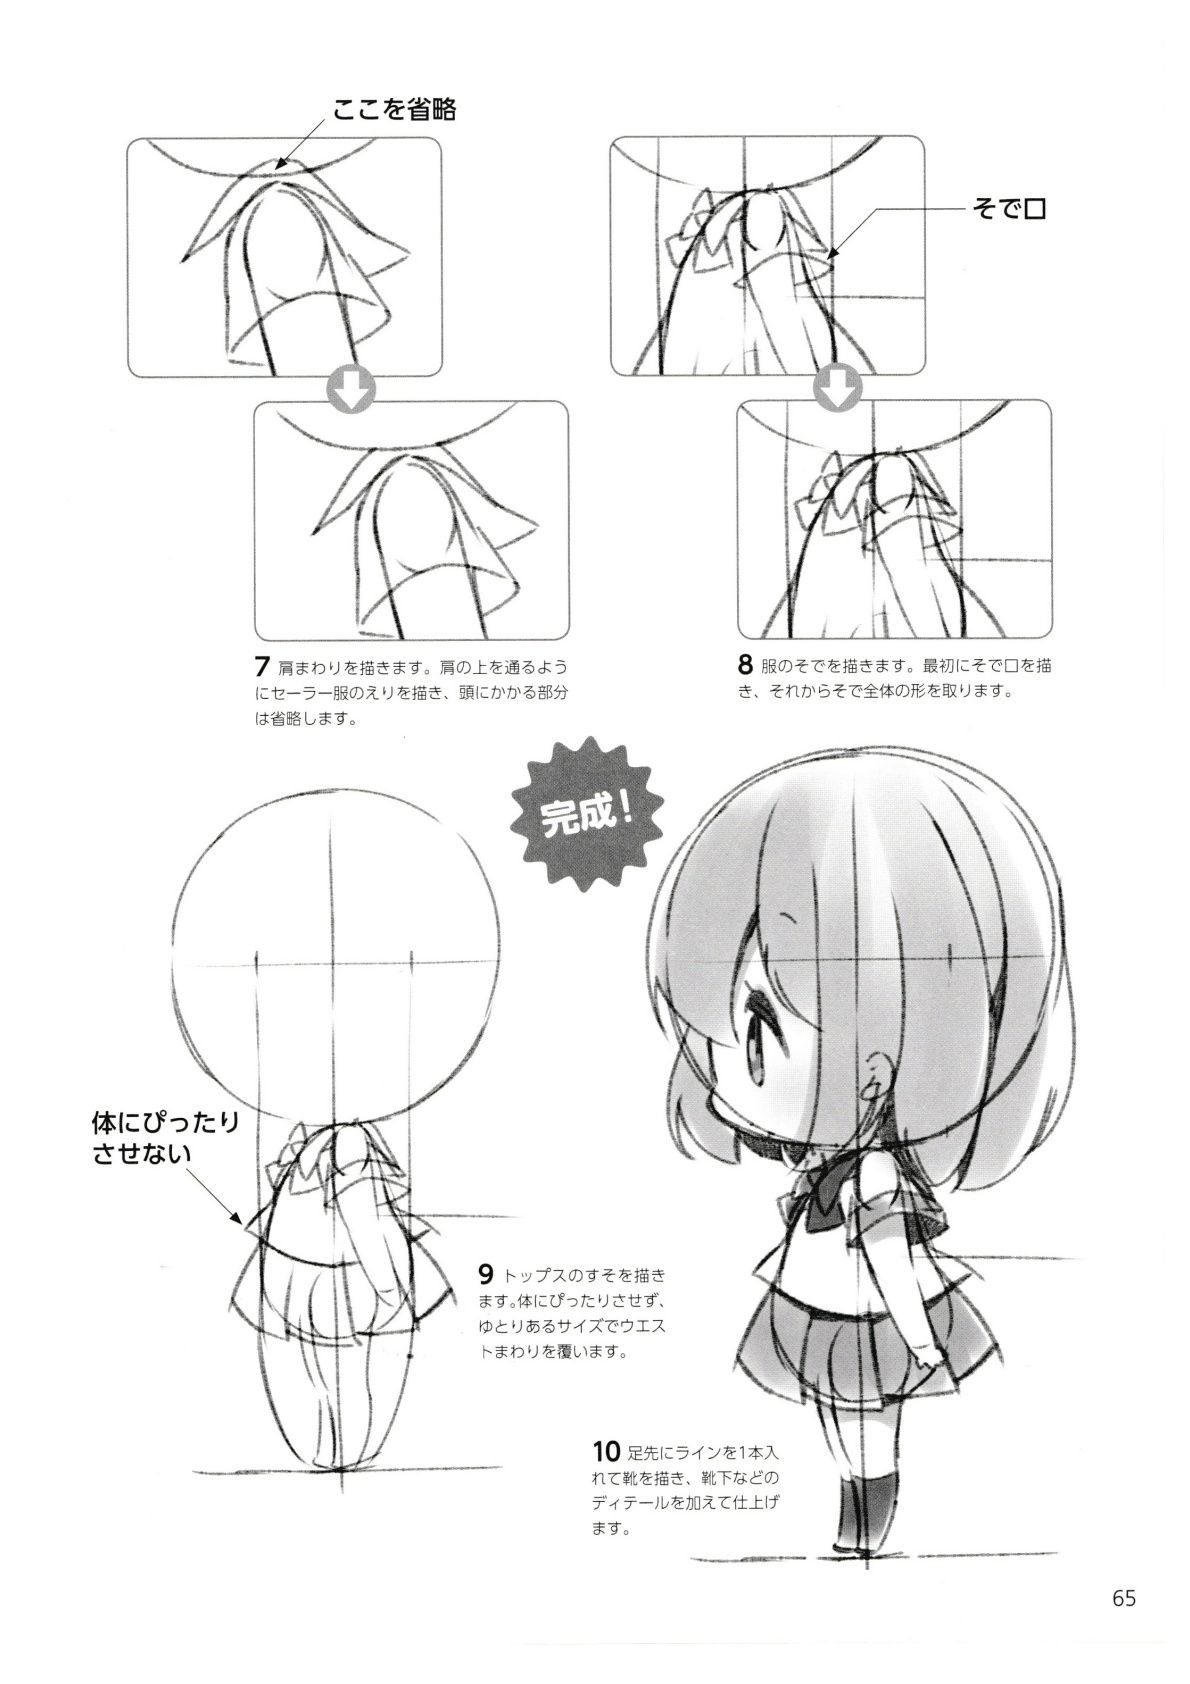 Pin by Kenza B on Chibi drawing tips Anime drawing books